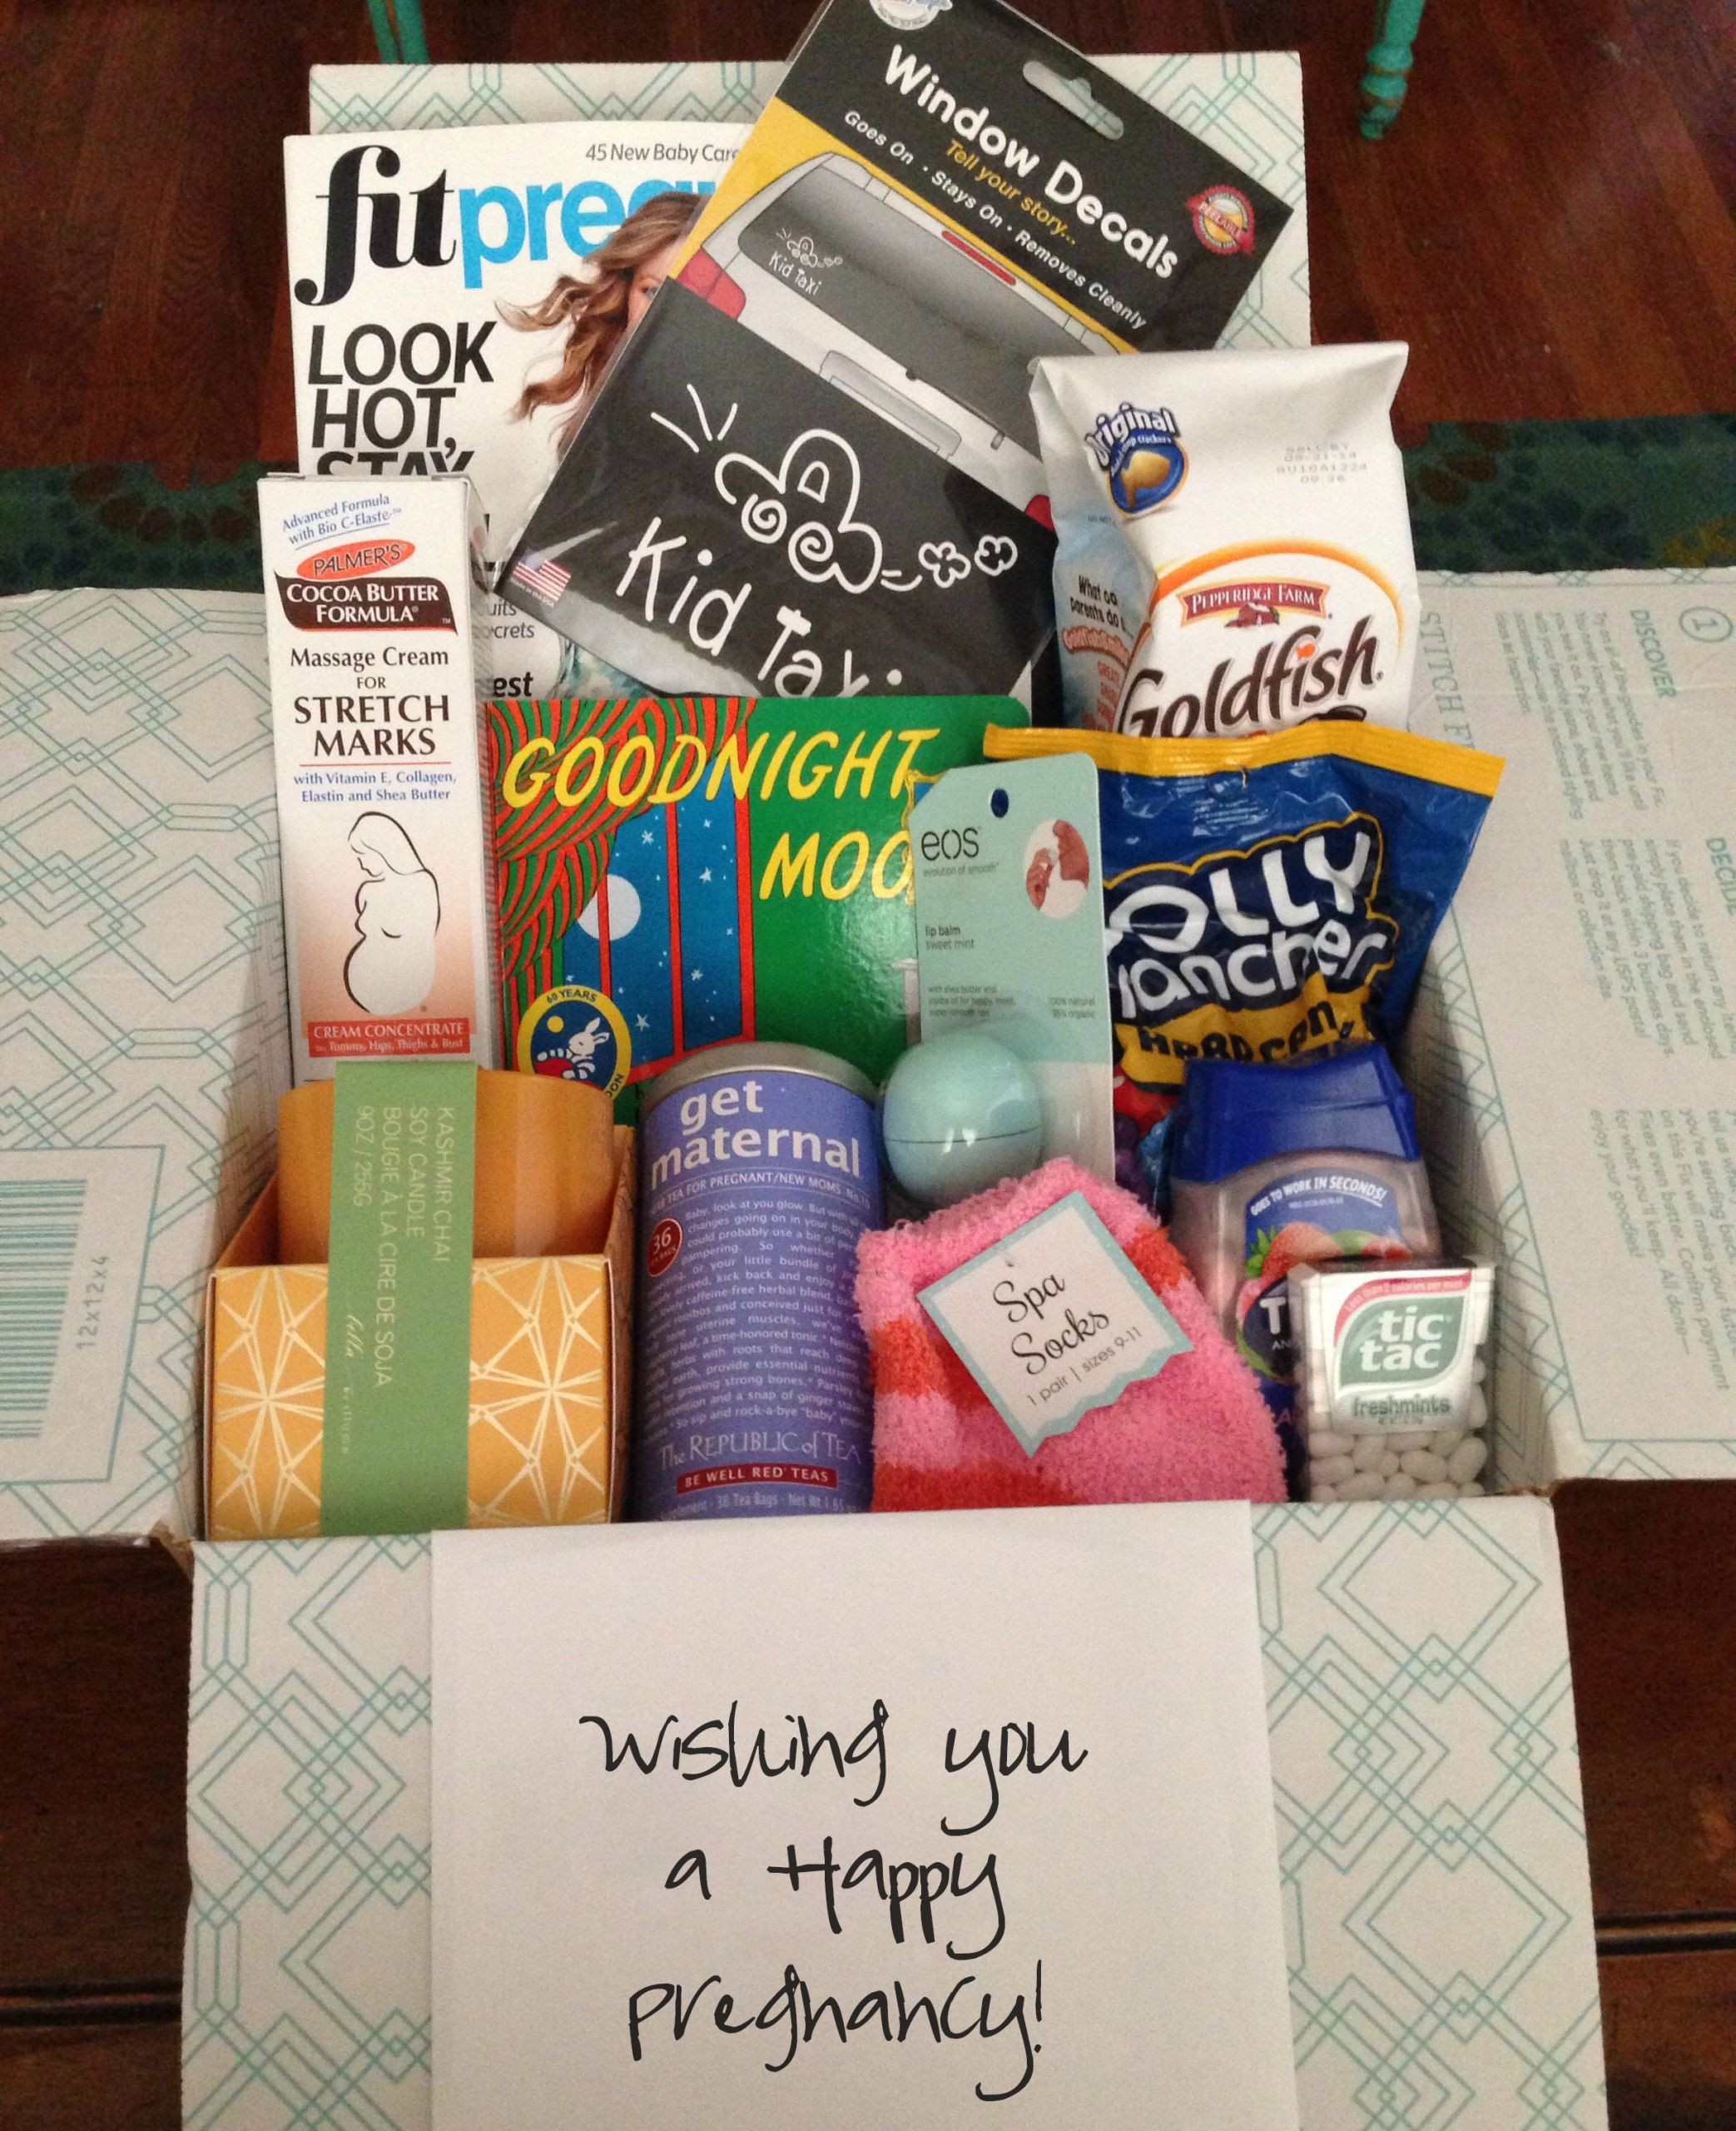 Expecting A Baby Gift  t guide pregnancy care package – Lock in Life